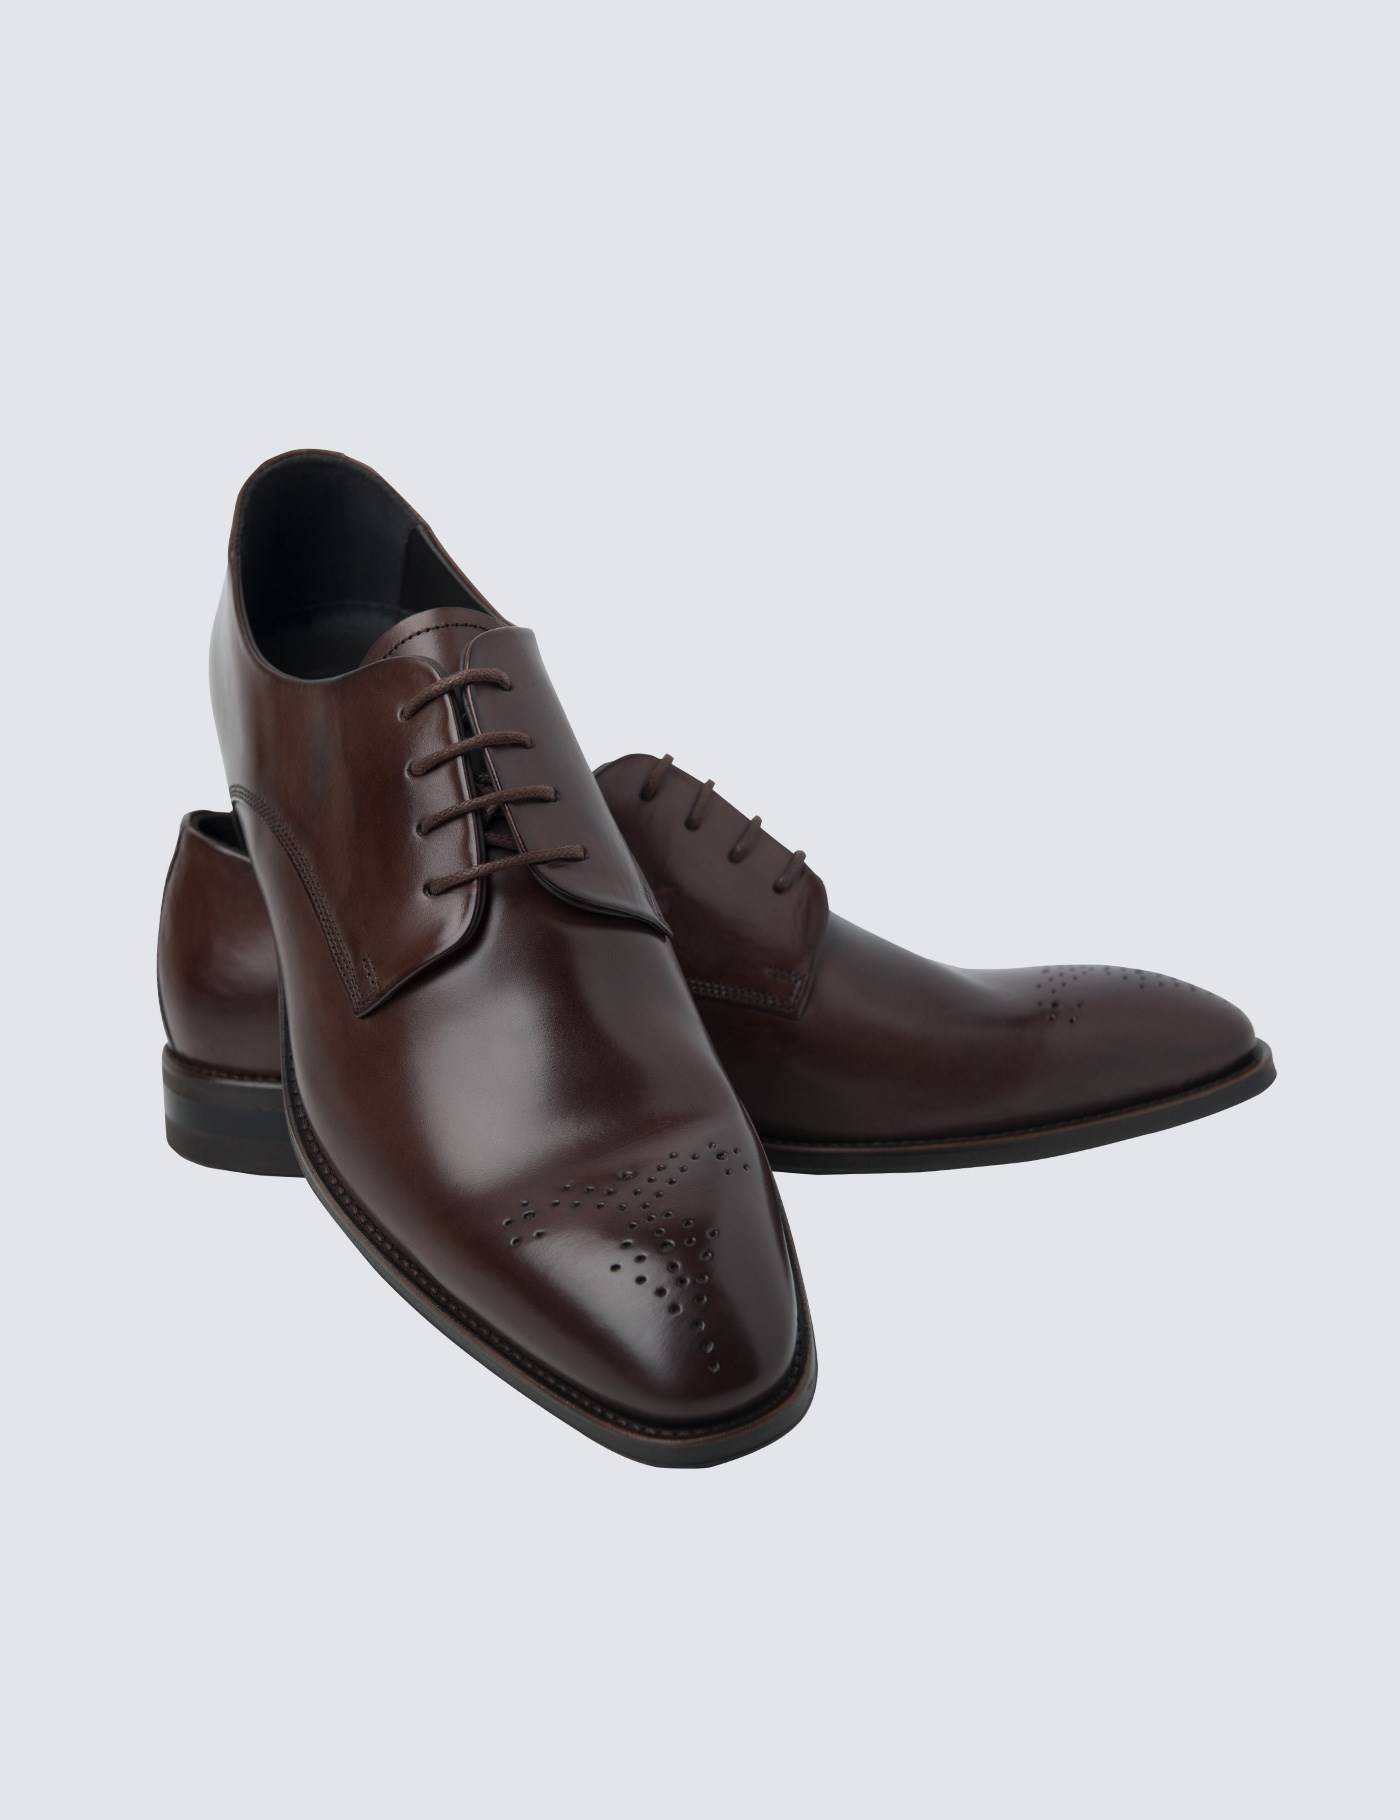 Hawes & Curtis Men's Leather Wholecut Shoes in Brown Size 9